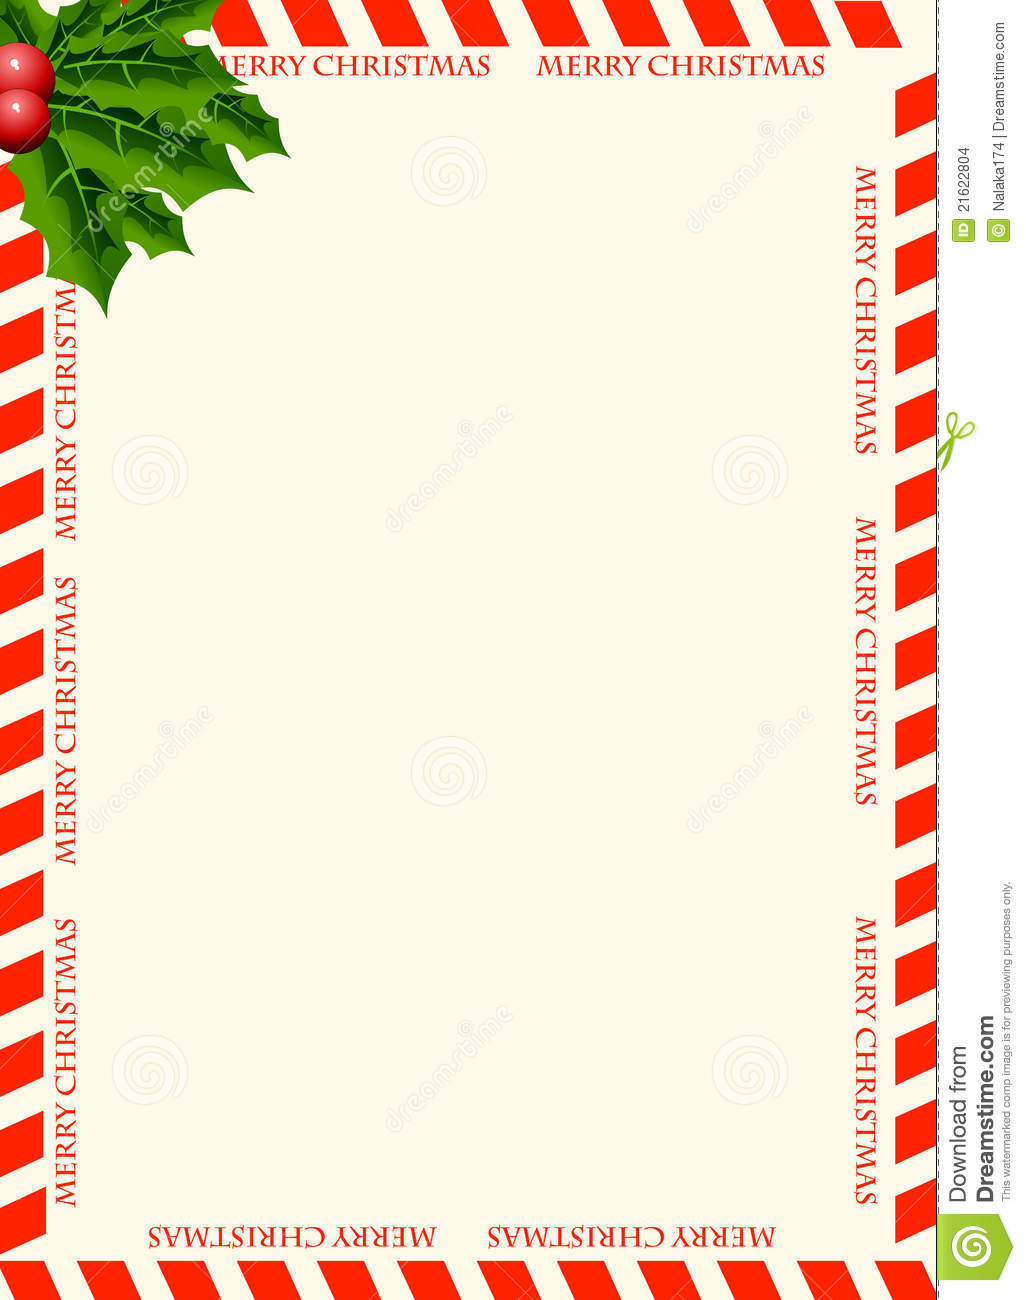 blank christmas invitation templates blank christmas invitation templates stock images blank template